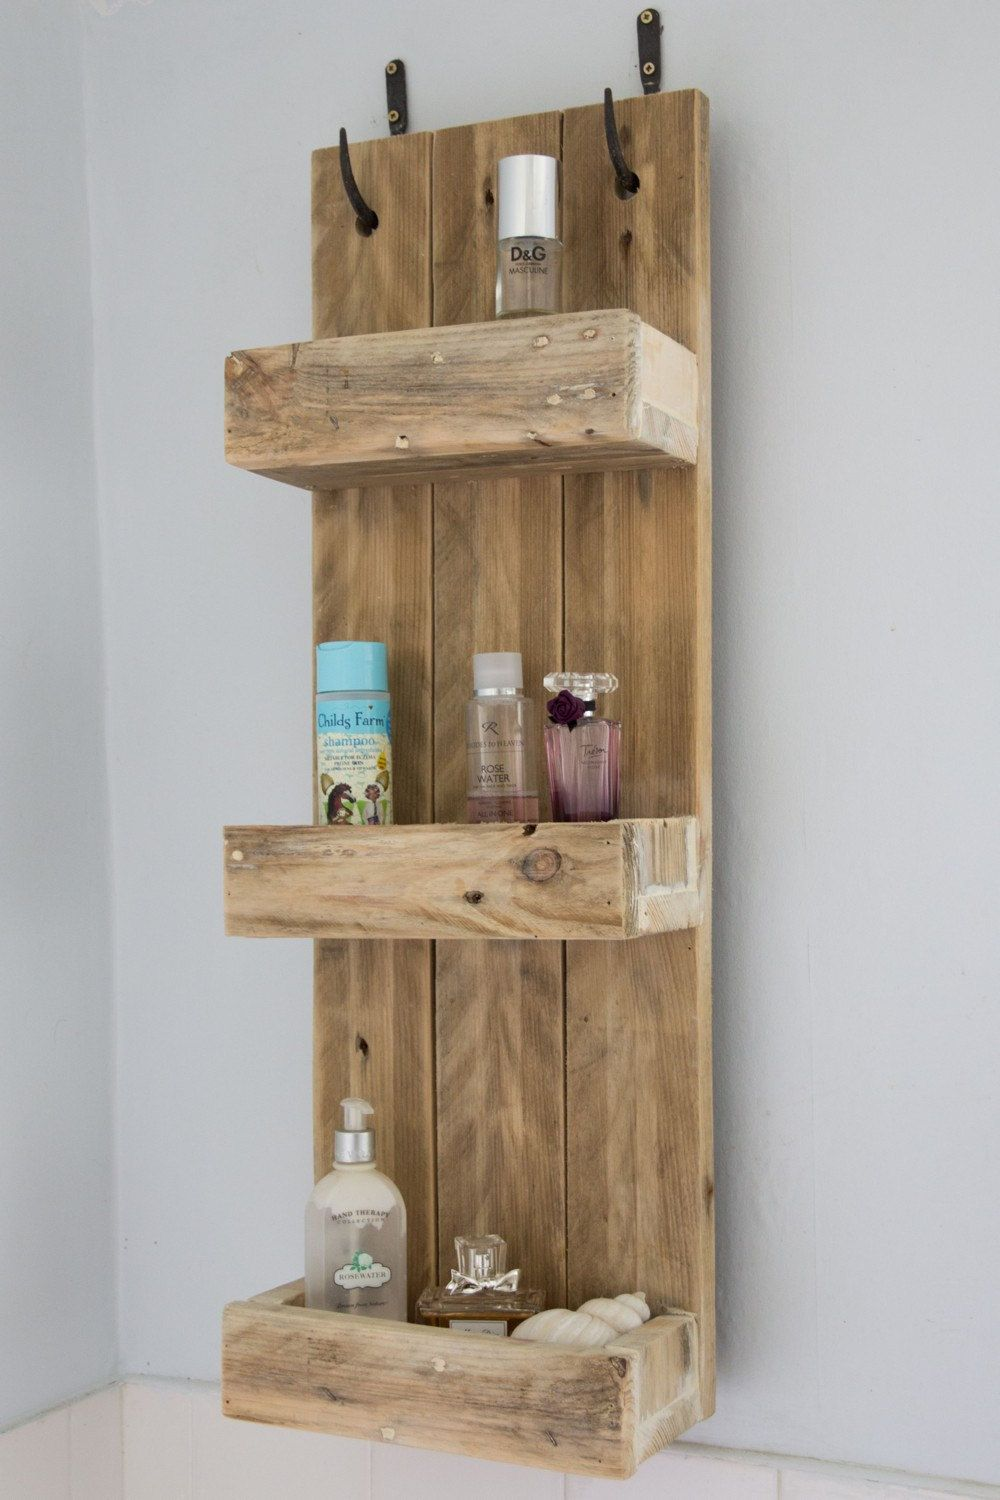 Rustic Bathroom Shelves Made From Reclaimed Pallet Wood Rustic Bathrooms And Shelves